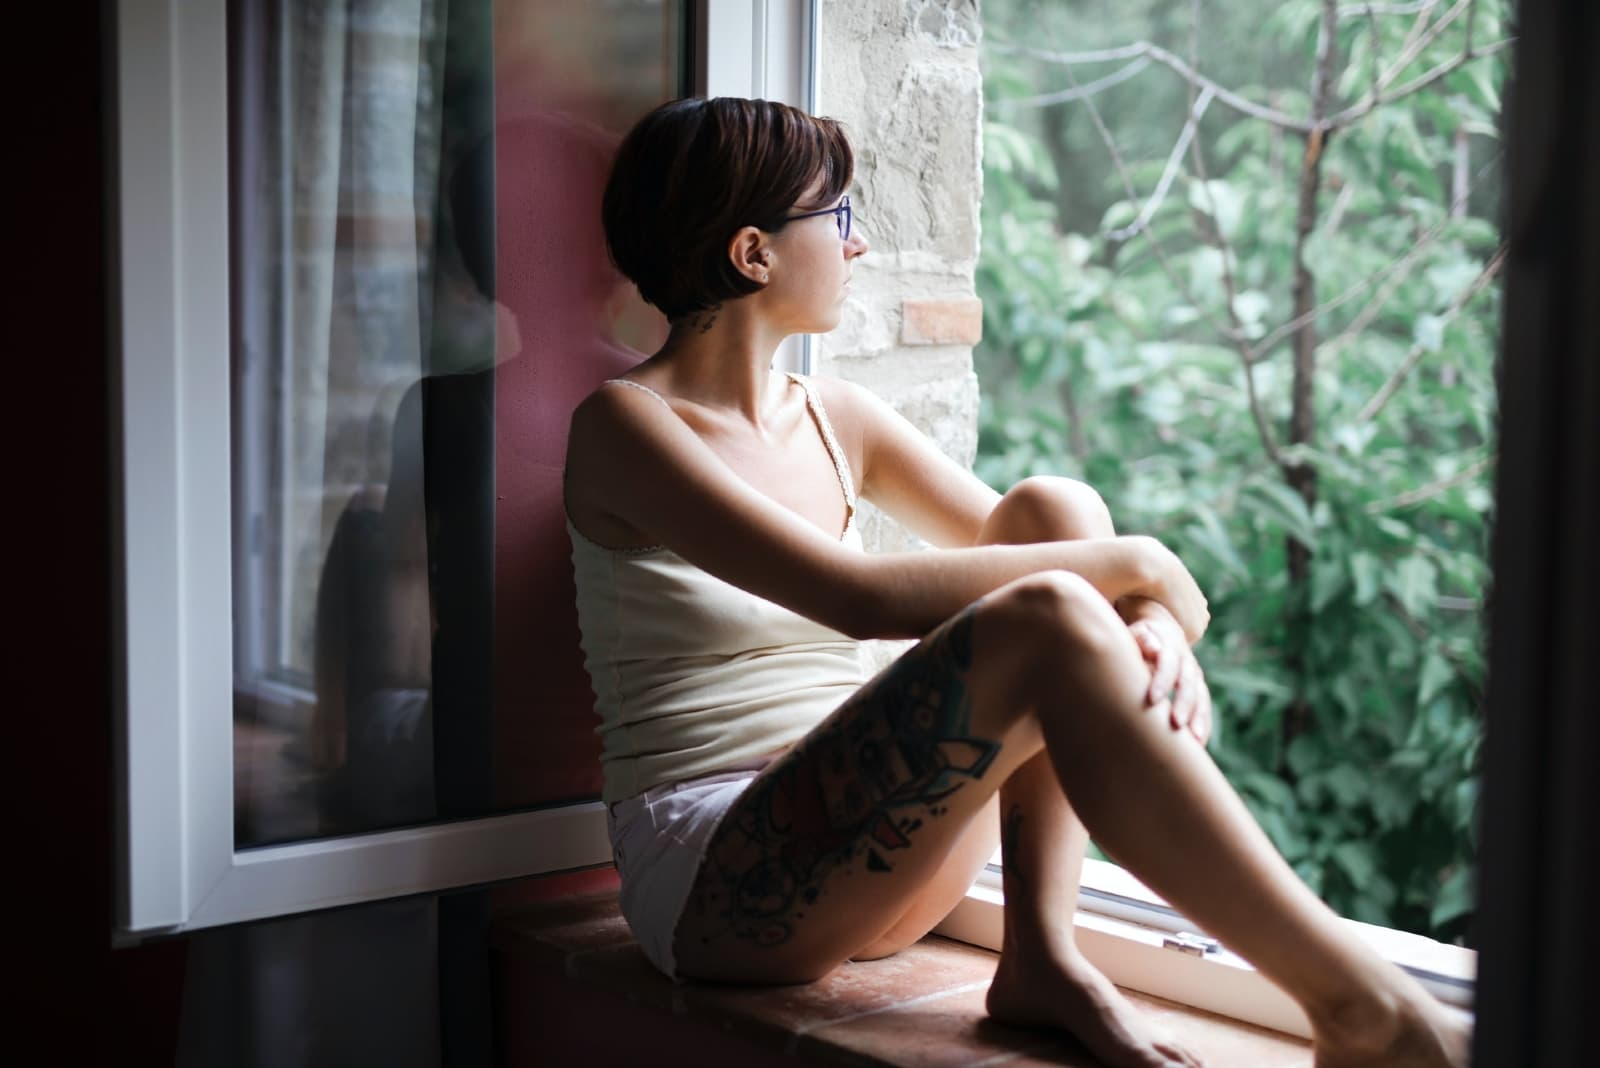 woman in white top sitting on window pane looking outside